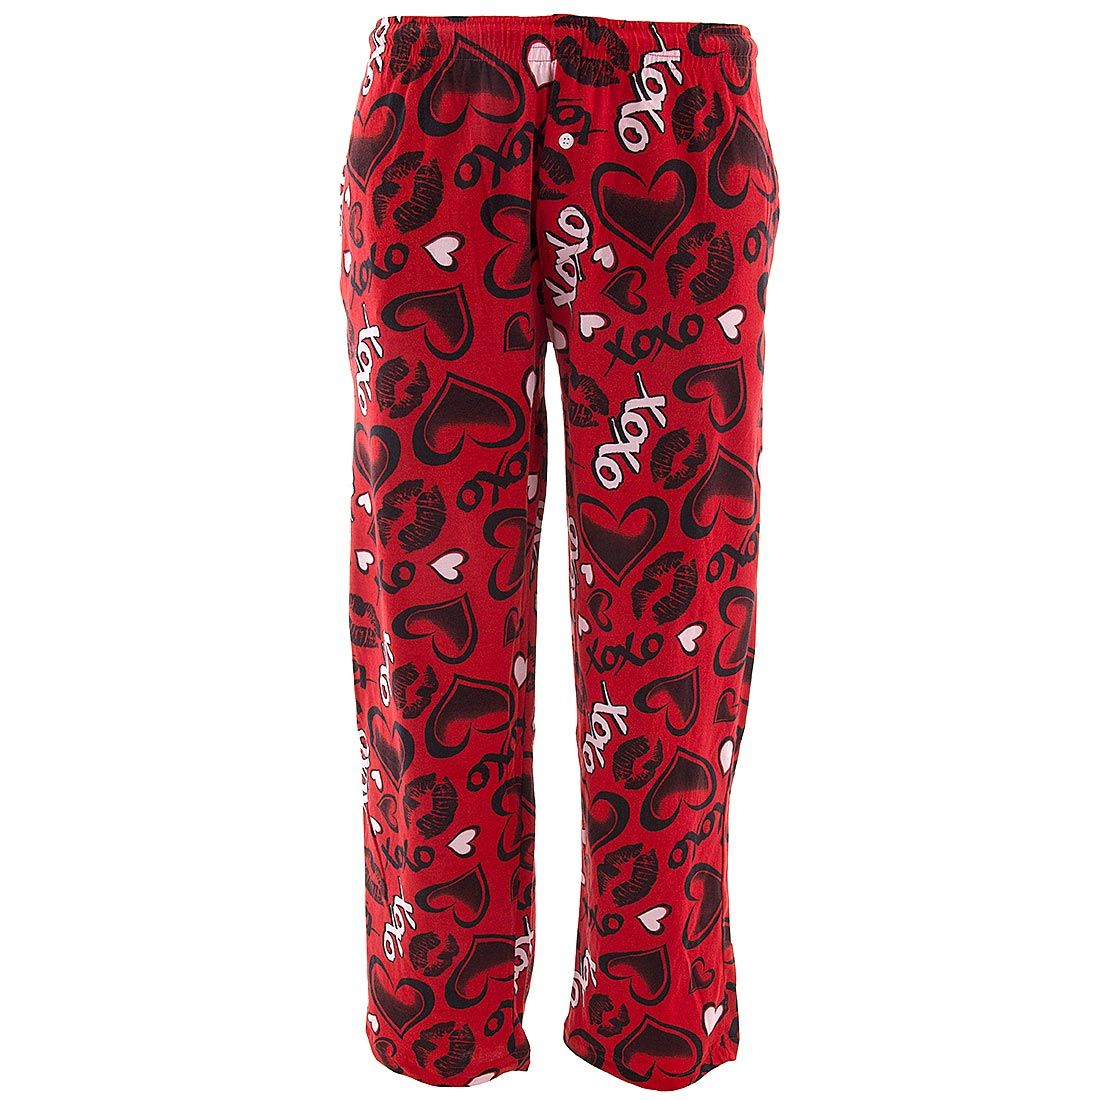 Family Guy Stewie Griffin Valentine's Day Pajamas for Men ...